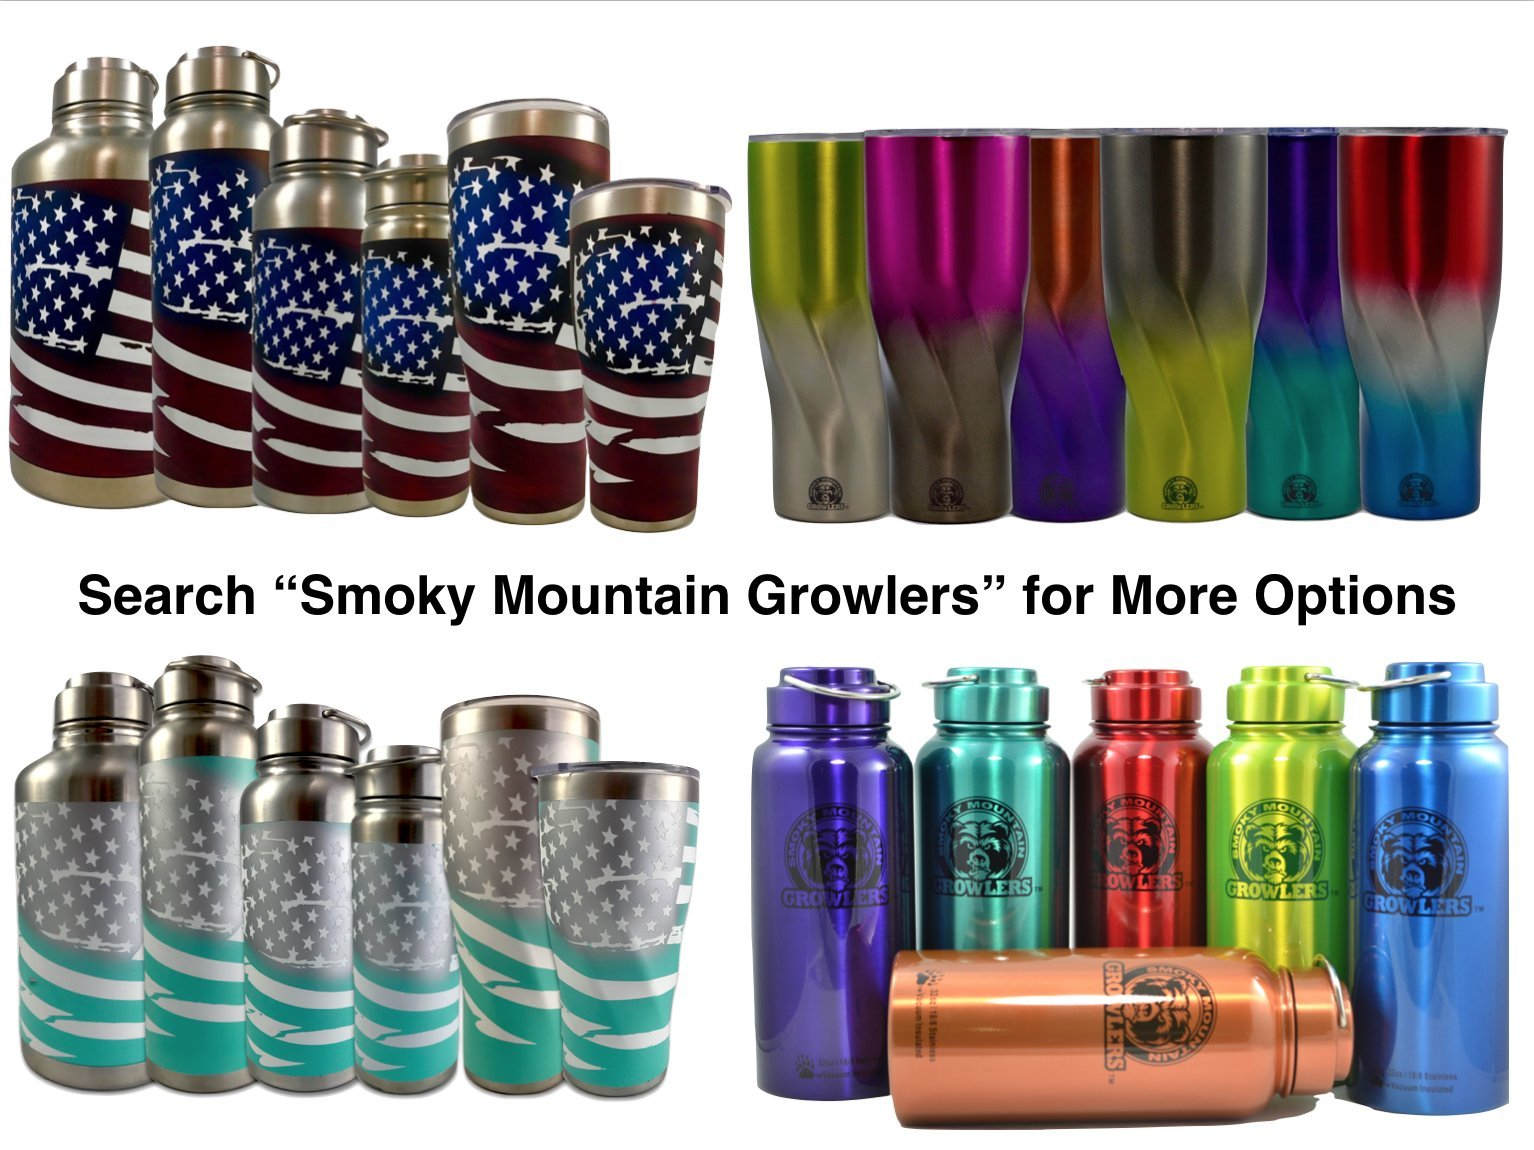 Tiffany Blue Limited Edition GrowlerGal Cerakote Freedom Growlers & Tumblers by Smoky Mountain Growlers (64 ounce Bottle)